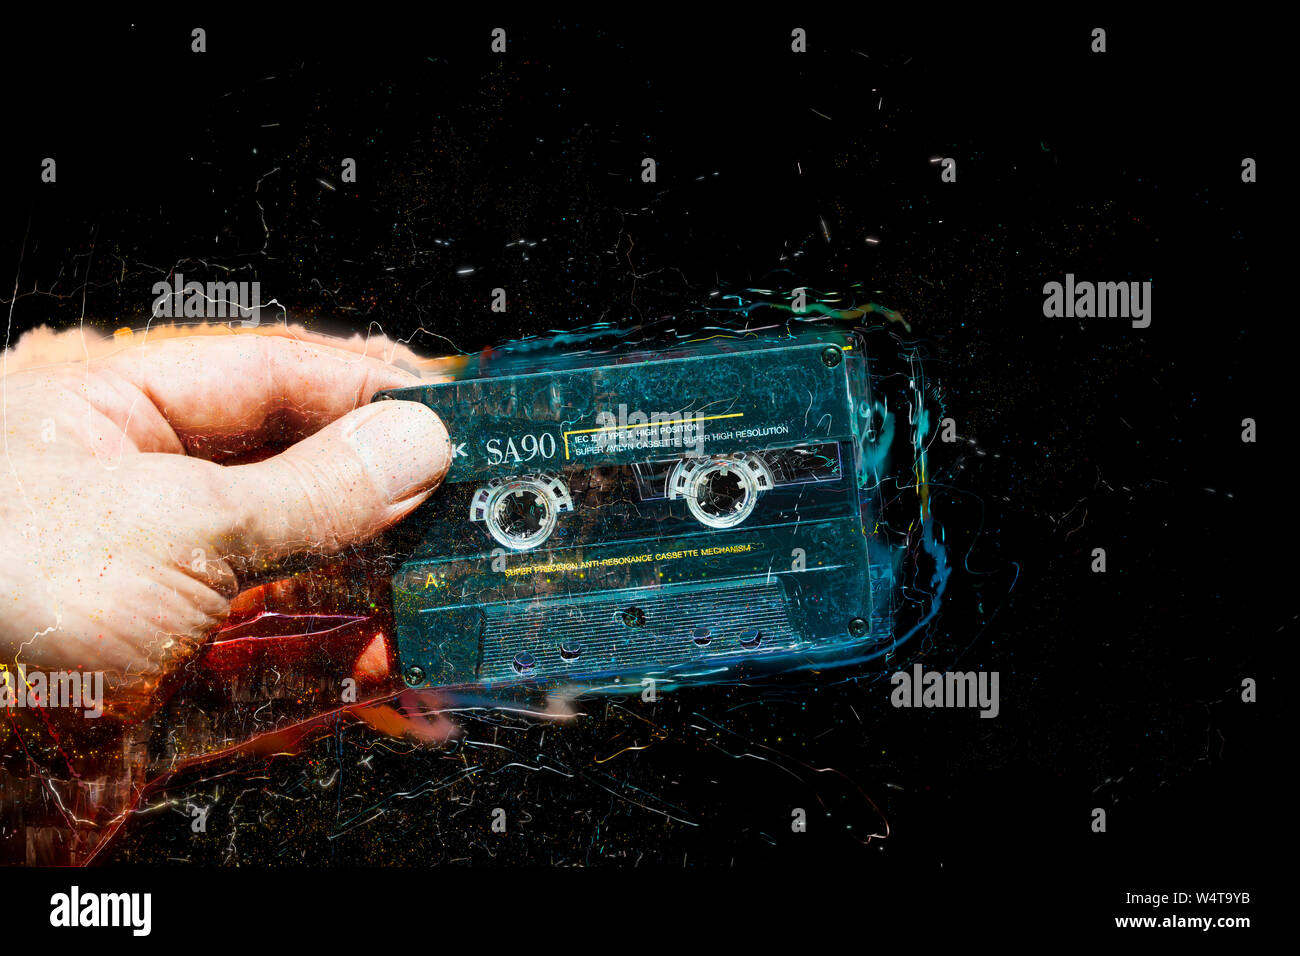 Concept image of an audio cassette tape bursting with musical energy Stock Photo